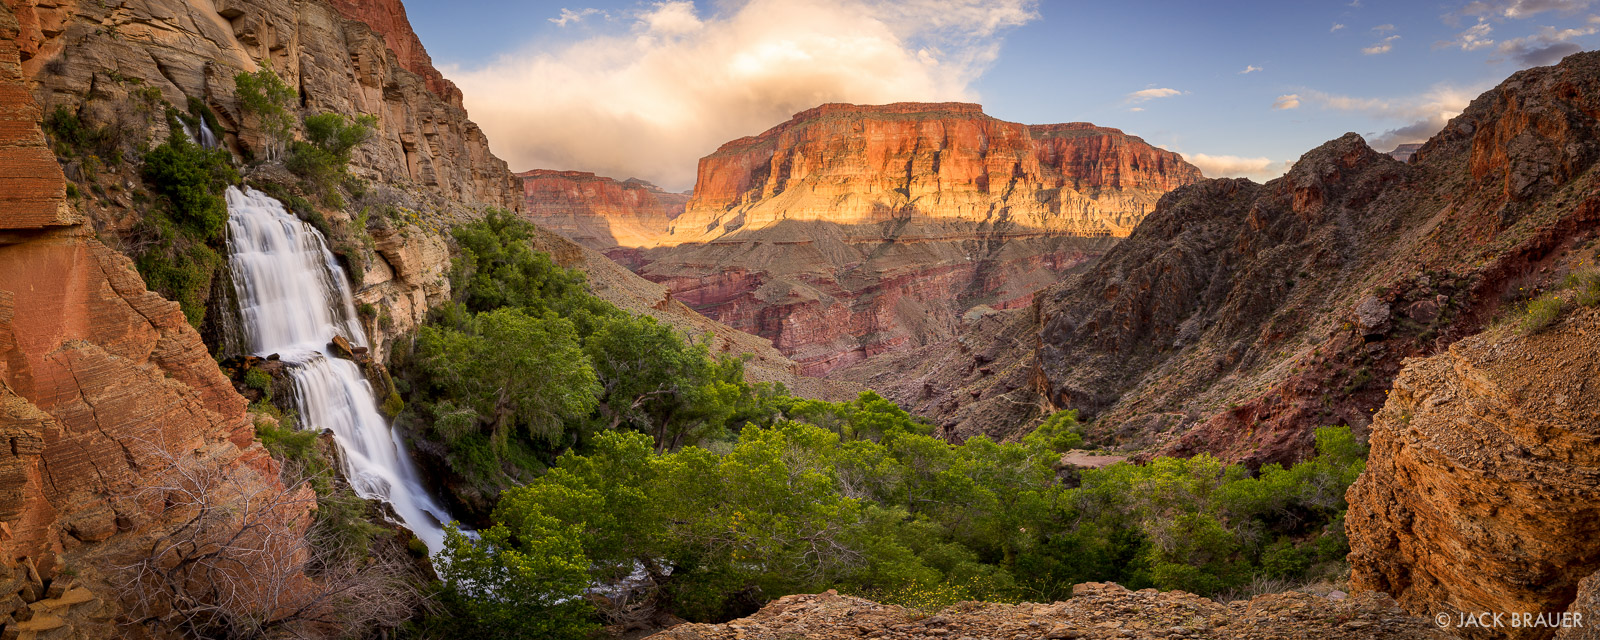 Arizona,Grand Canyon,Thunder River,panorama,waterfall, photo